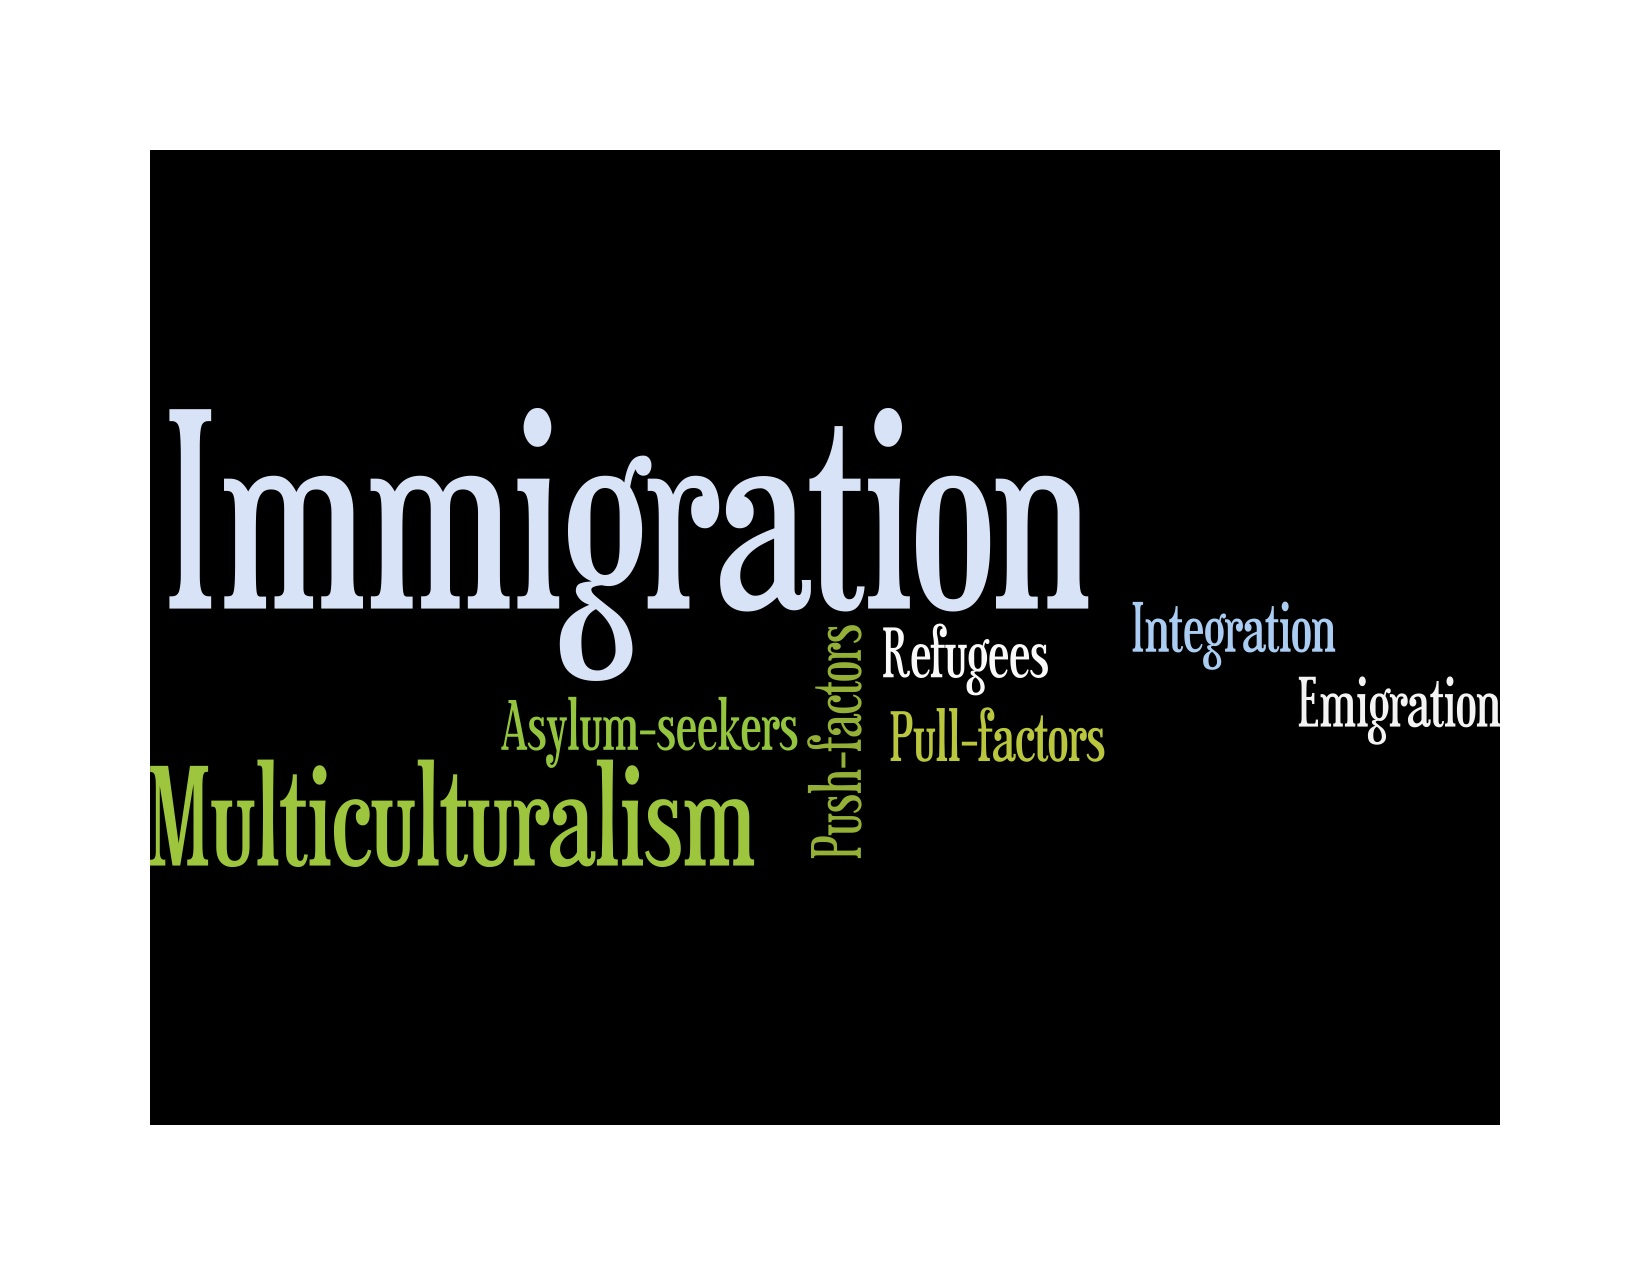 016 Immigration Essay Example Exceptional Examples Pro Argumentative Outline Full